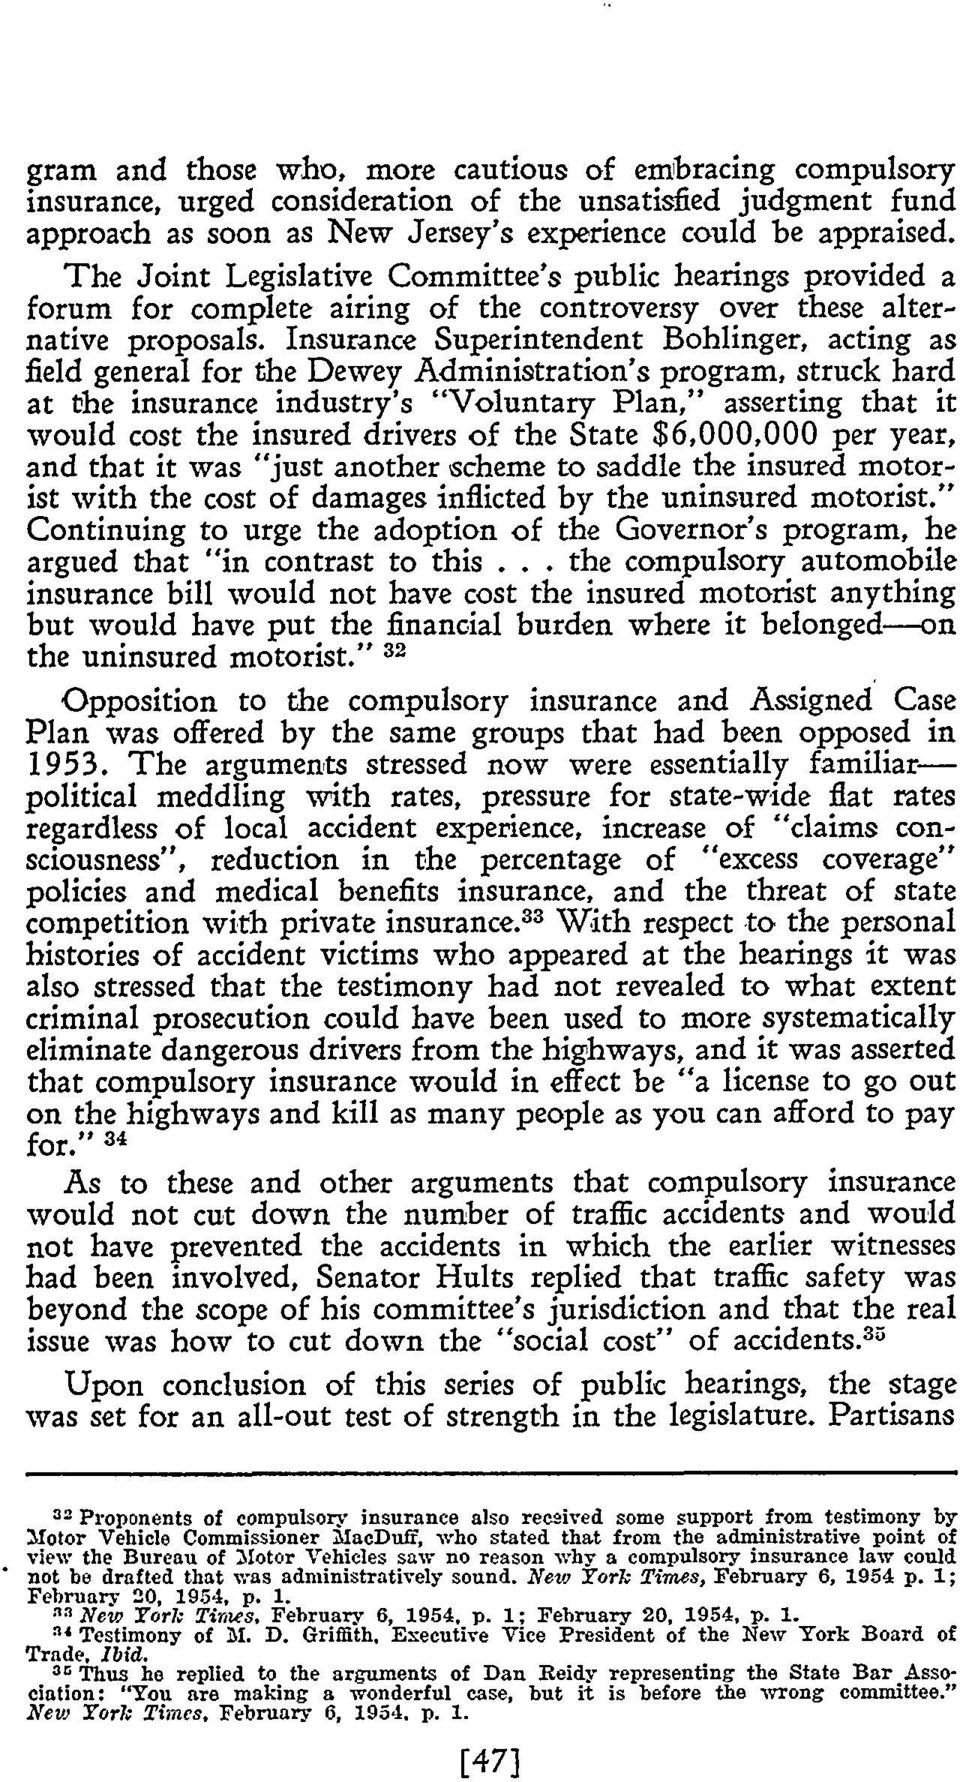 "Insurance Superintendent Bohlinger, acting as field general for the Dewey Administration's program, struck hard at the insurance industry's ""Voluntary Plan,"" asserting that it would cost the insured"